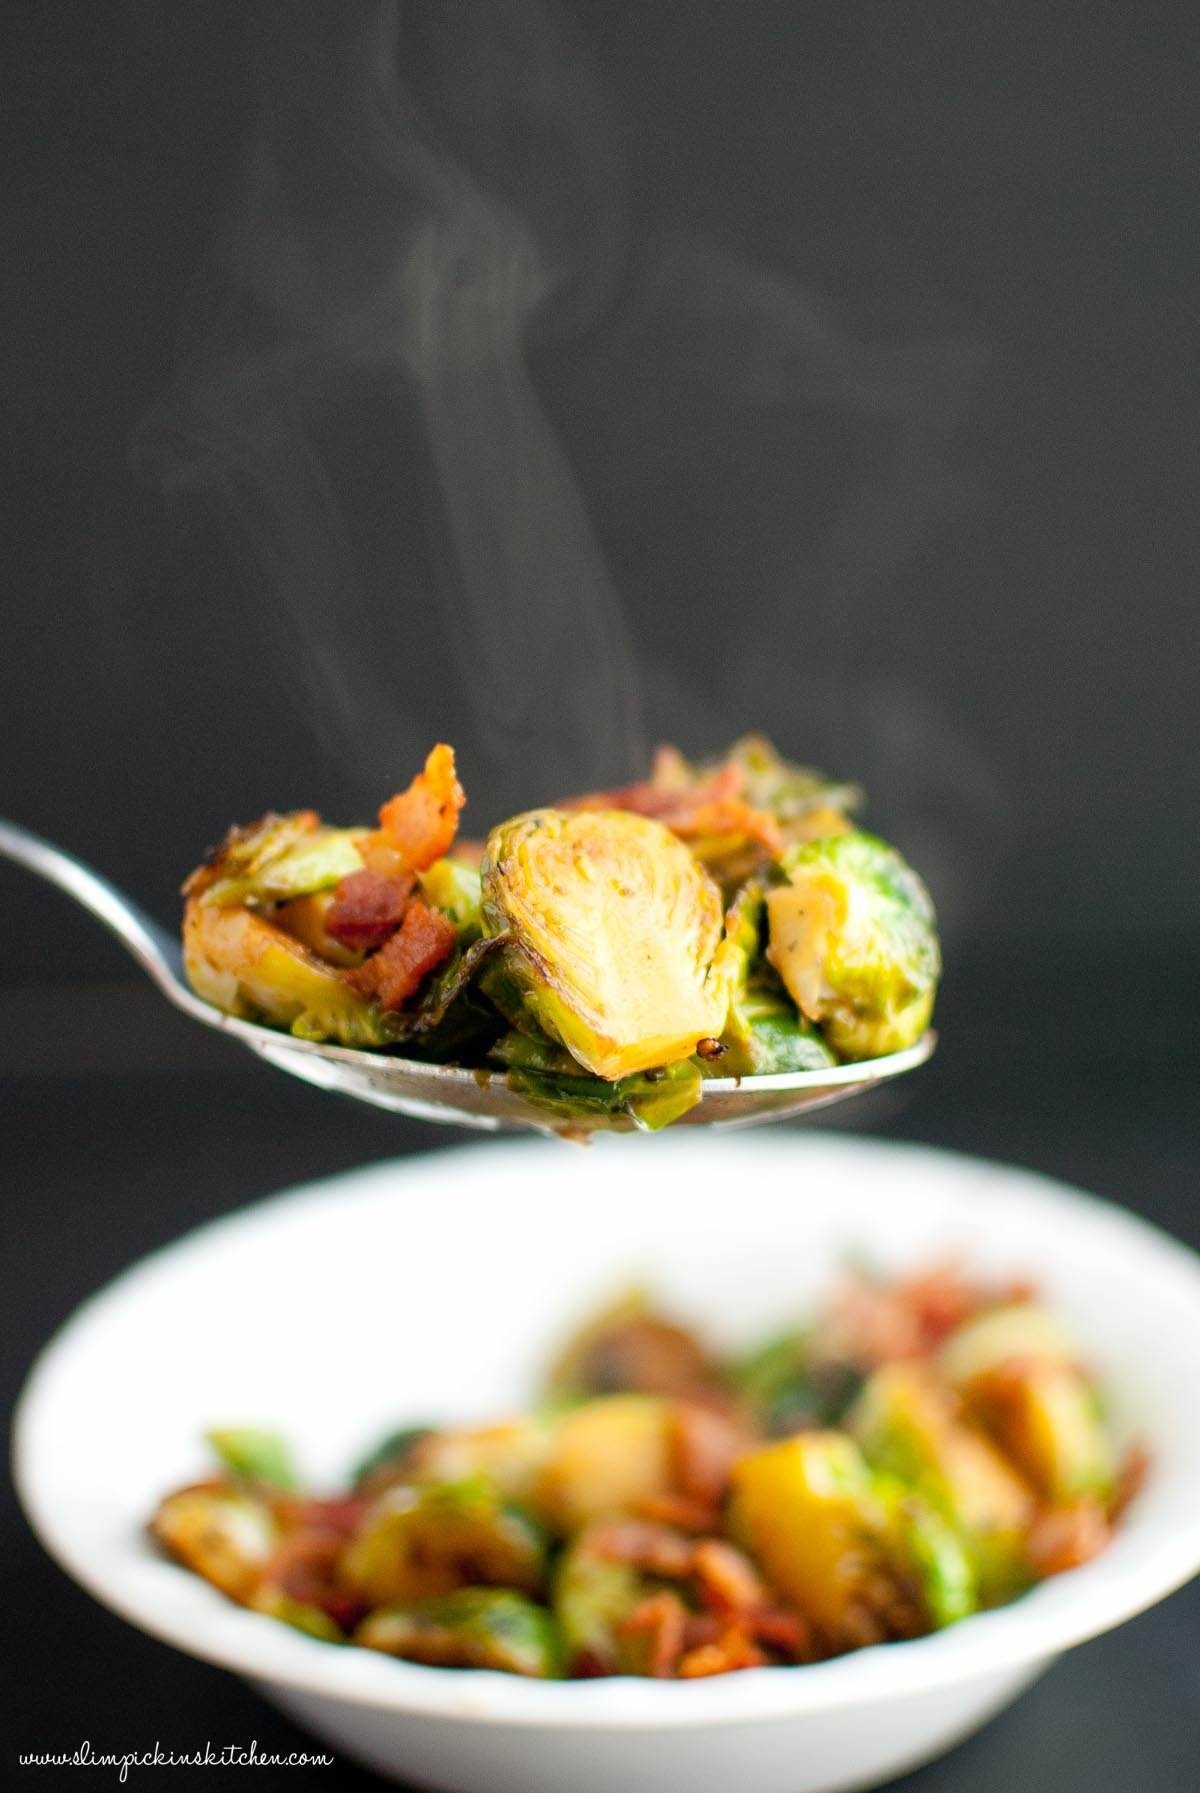 Apple Cider Glazed Brussels Sprouts ⋆ Slim Pickin's Kitchen